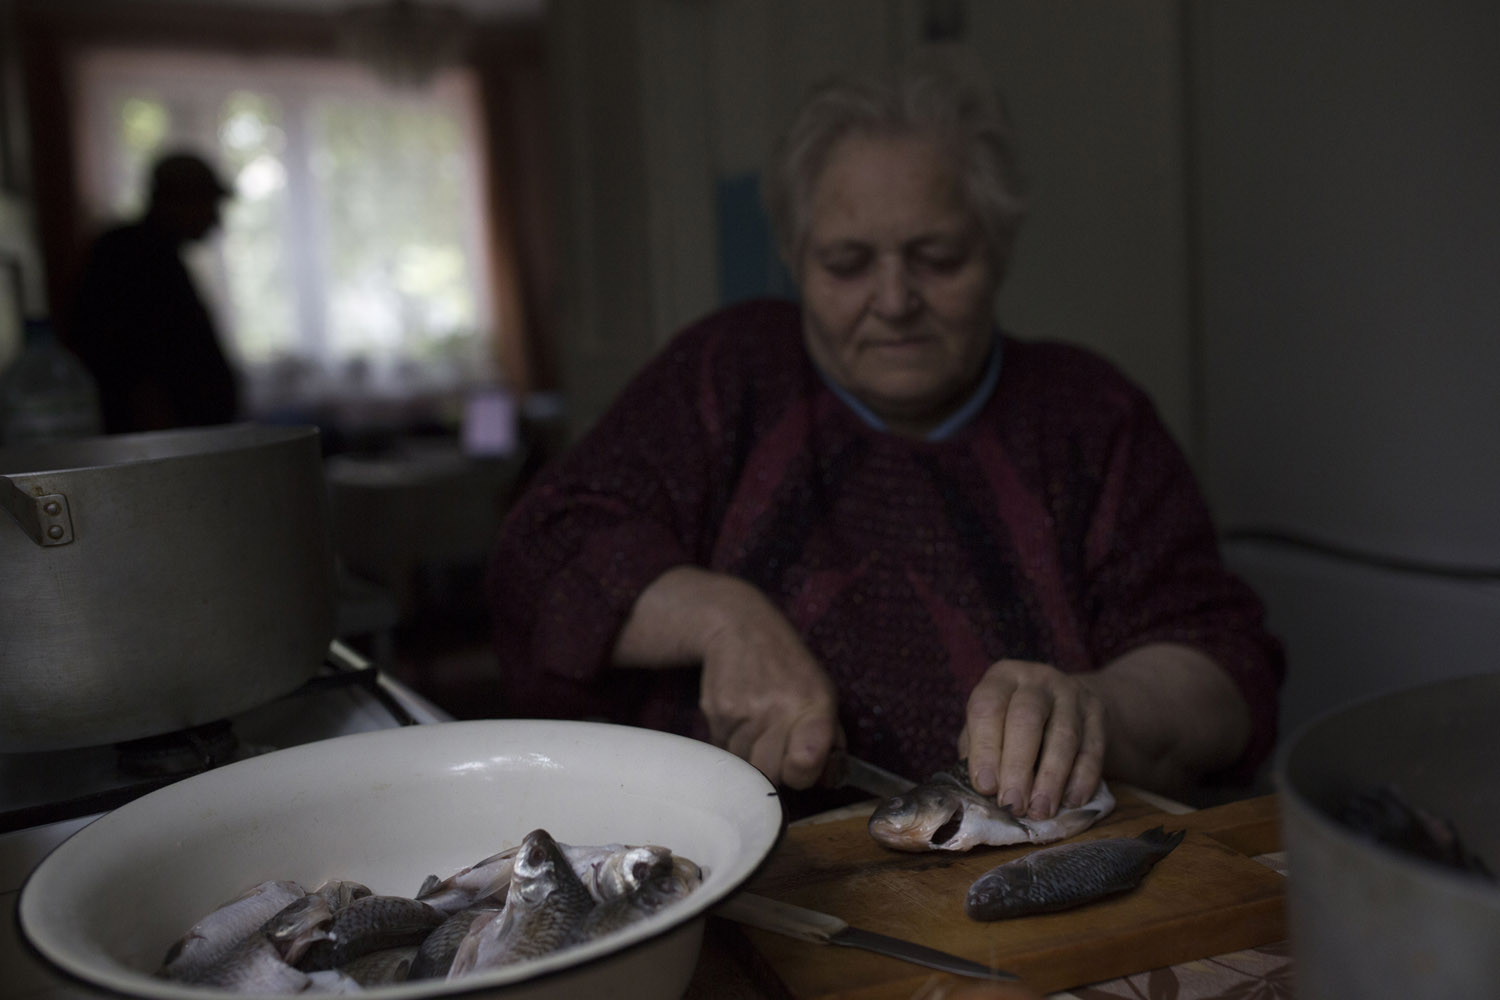 Vova's mother prepares gefilte fish, a traditional Jewish dish, at her home in Khust.